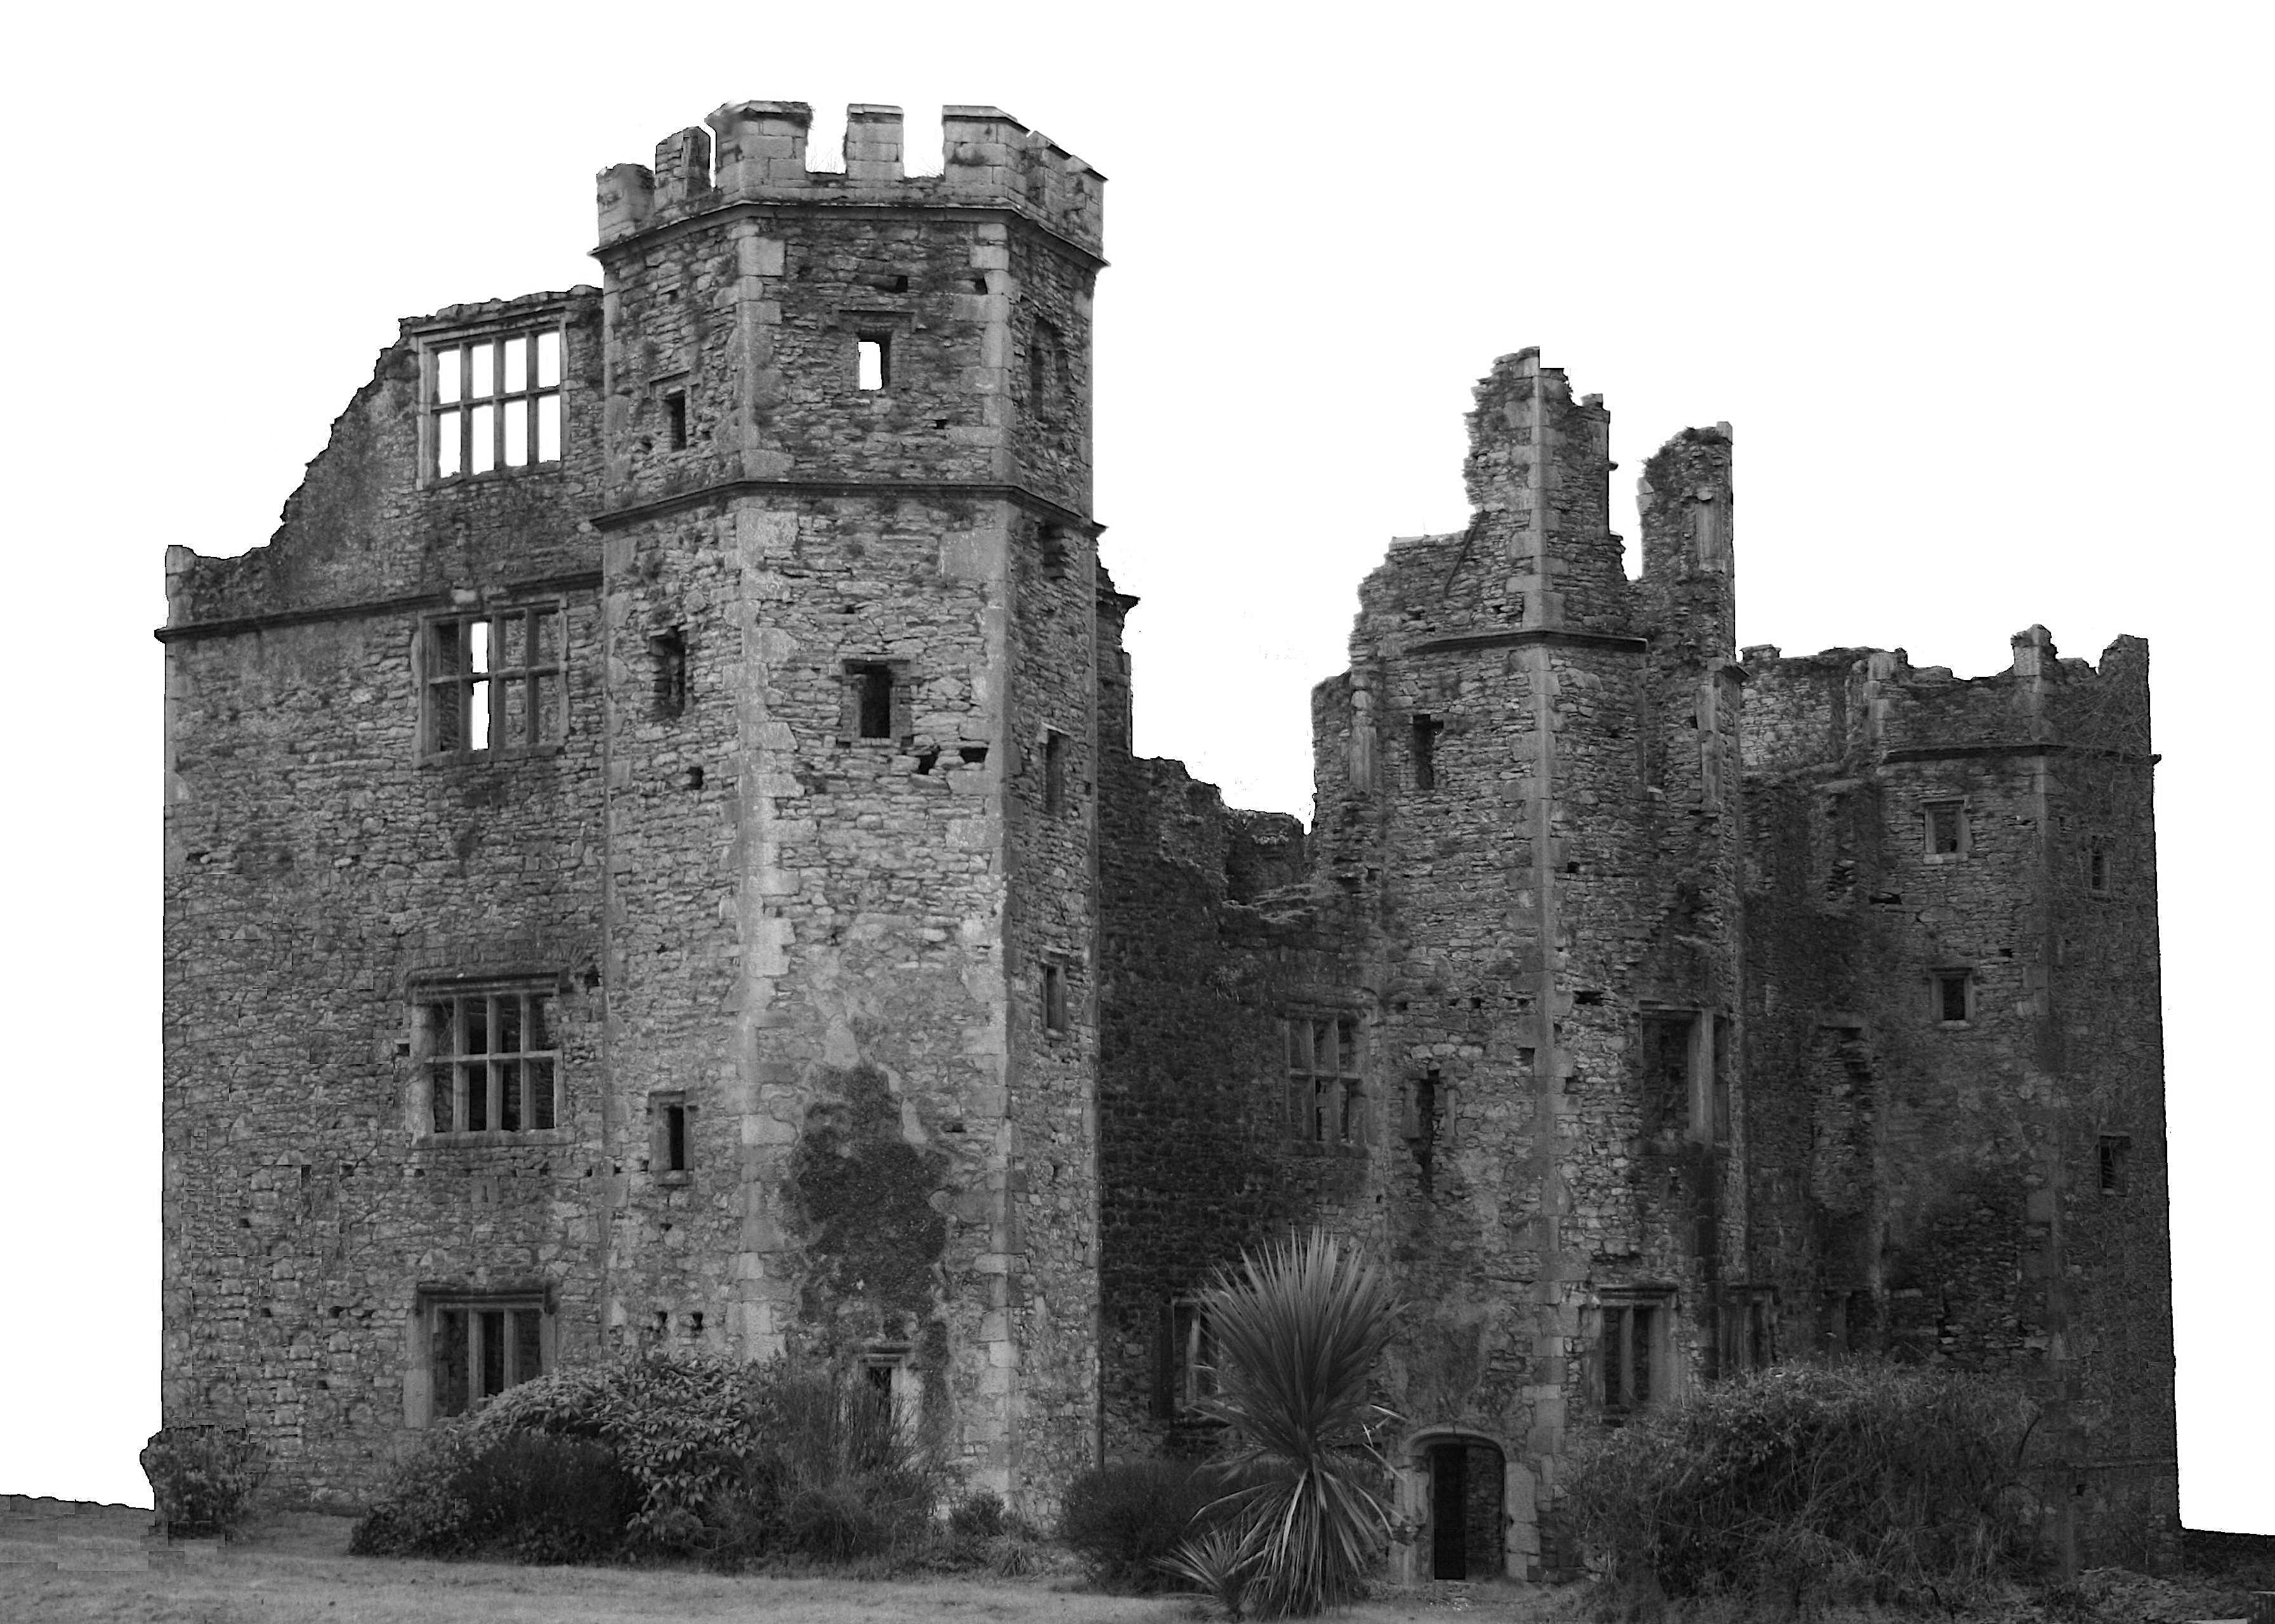 Fig. 1: The façade of Mallow Castle. The entrance doorway is in the central turret but was not visible from the front of the building.